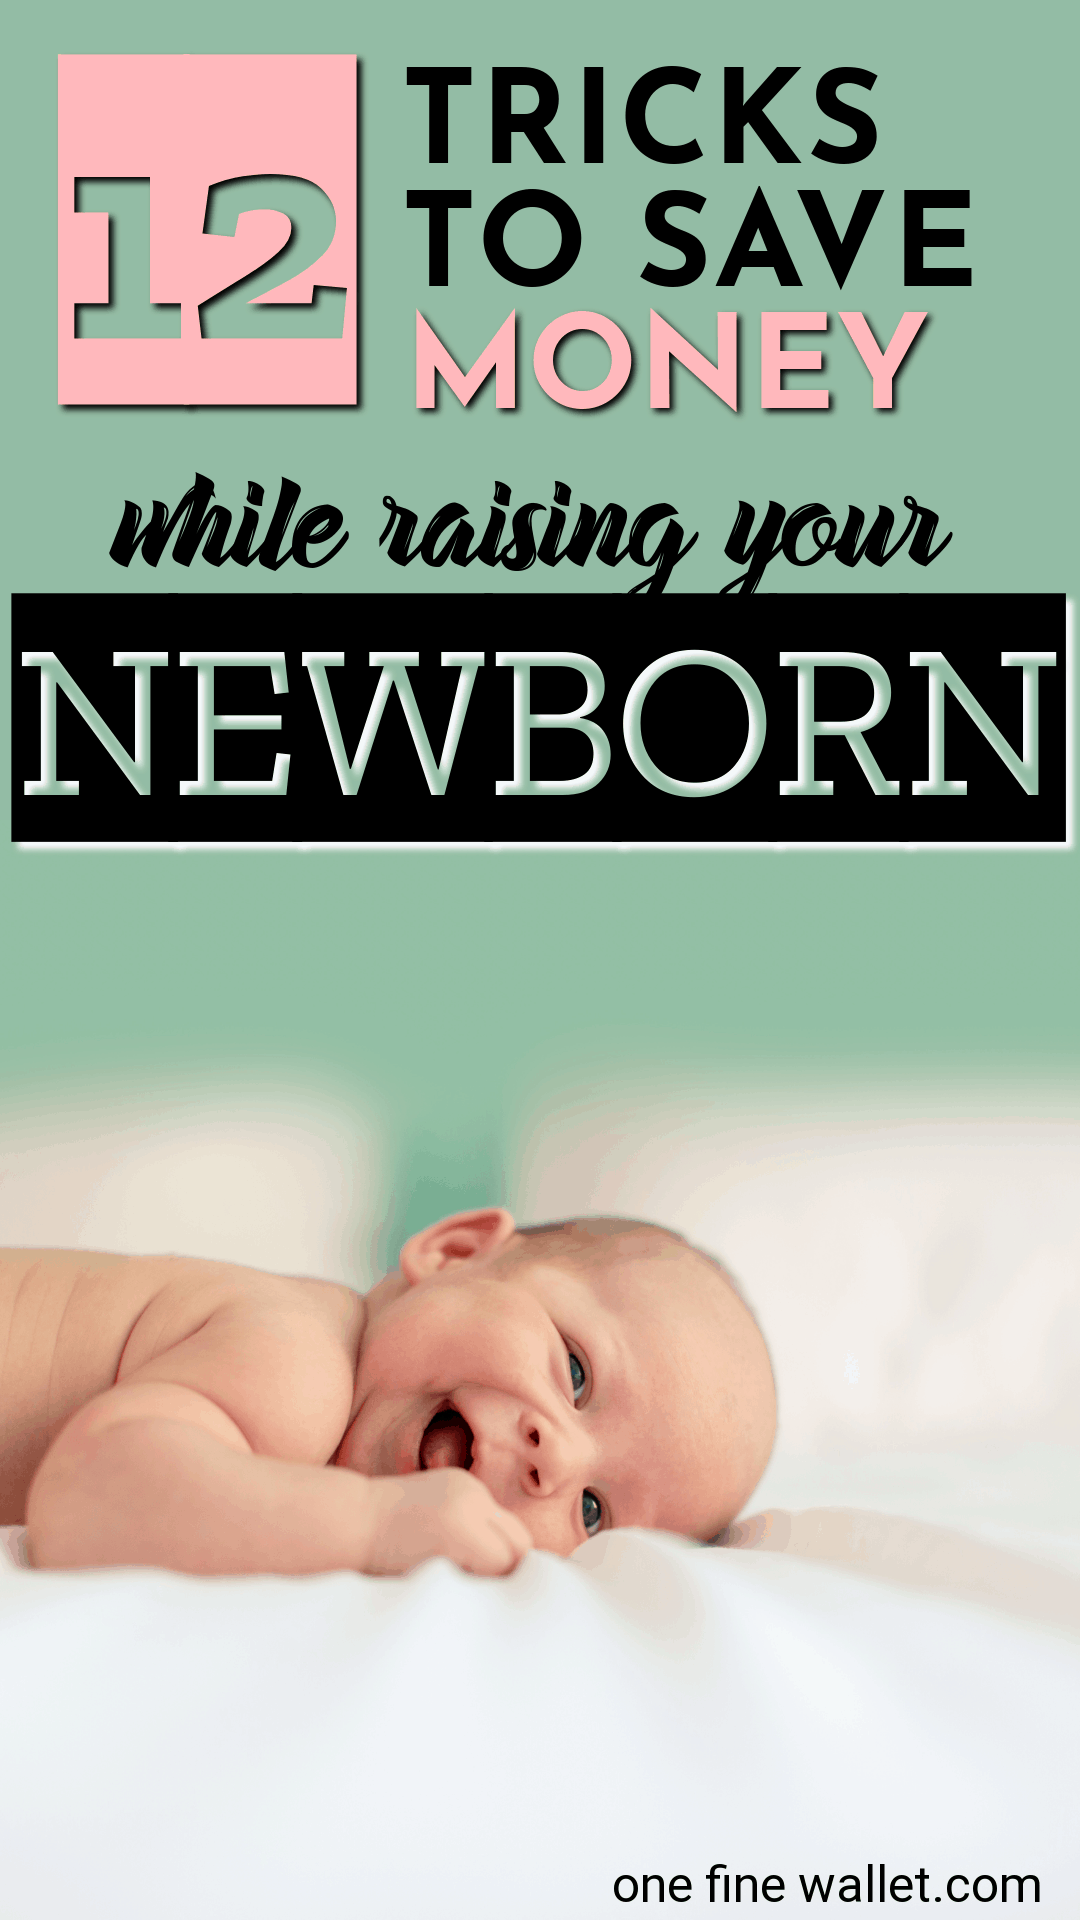 Having a baby does not need to be expensive. Here are 12 baby hacks that will help you save money on your newborn baby. #preganancy #newborn #savingmoney #savemoney #frugaltips